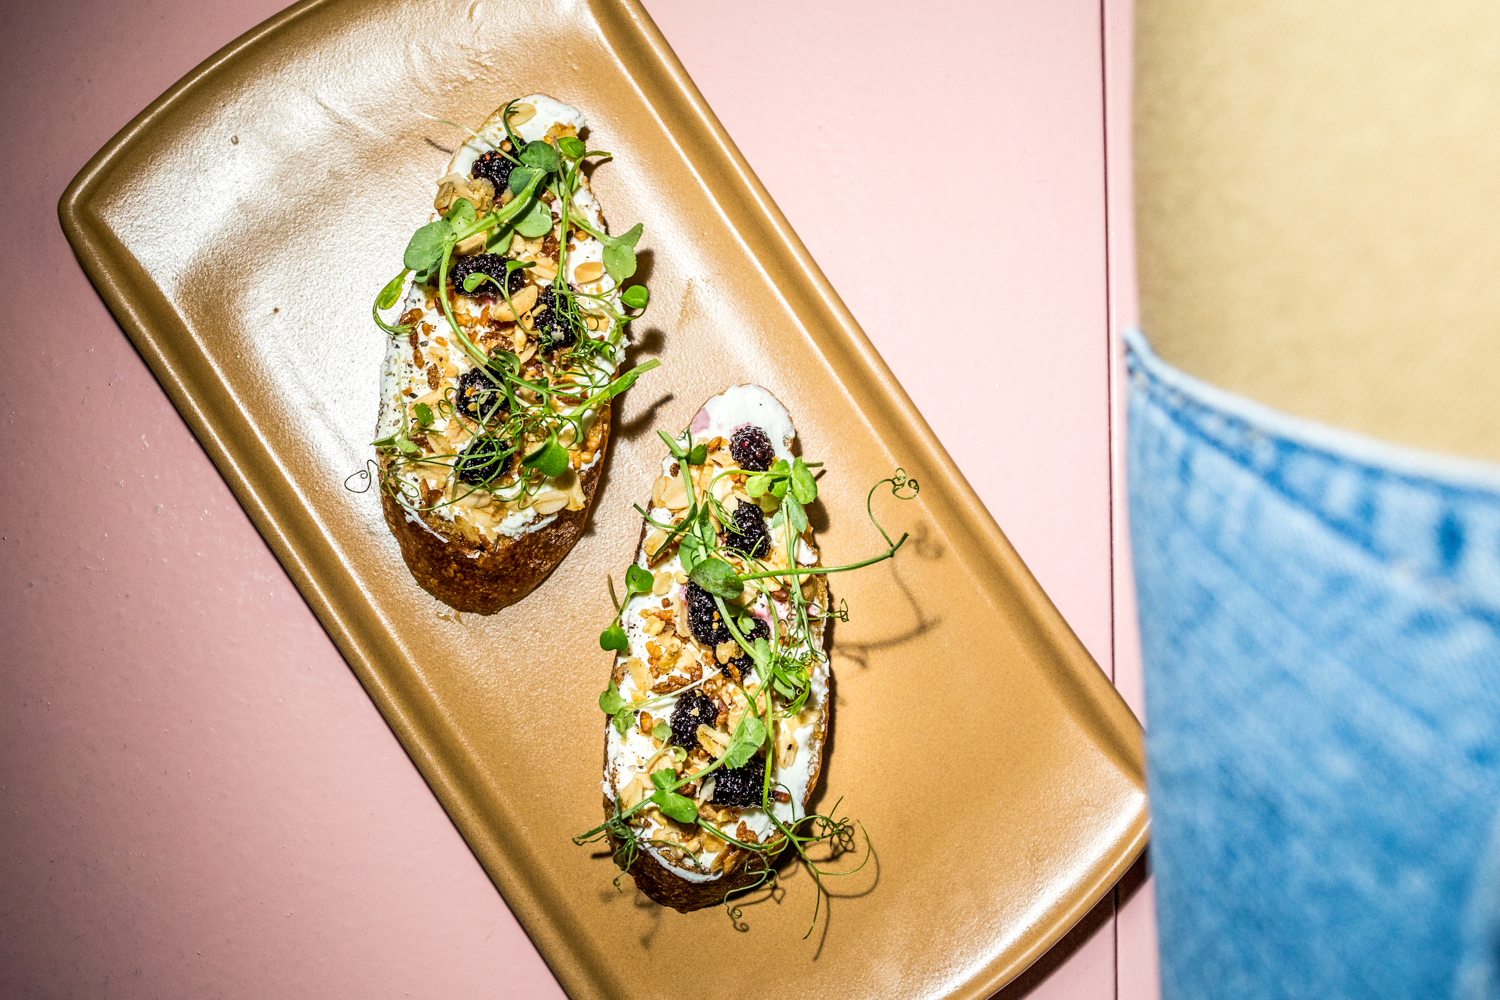 Crostini: Leonora goat cheese, mulberry, savory oat crumble, and Wacky Pea Tendrils / Image: Catherine Viox // Published: 9.19.19